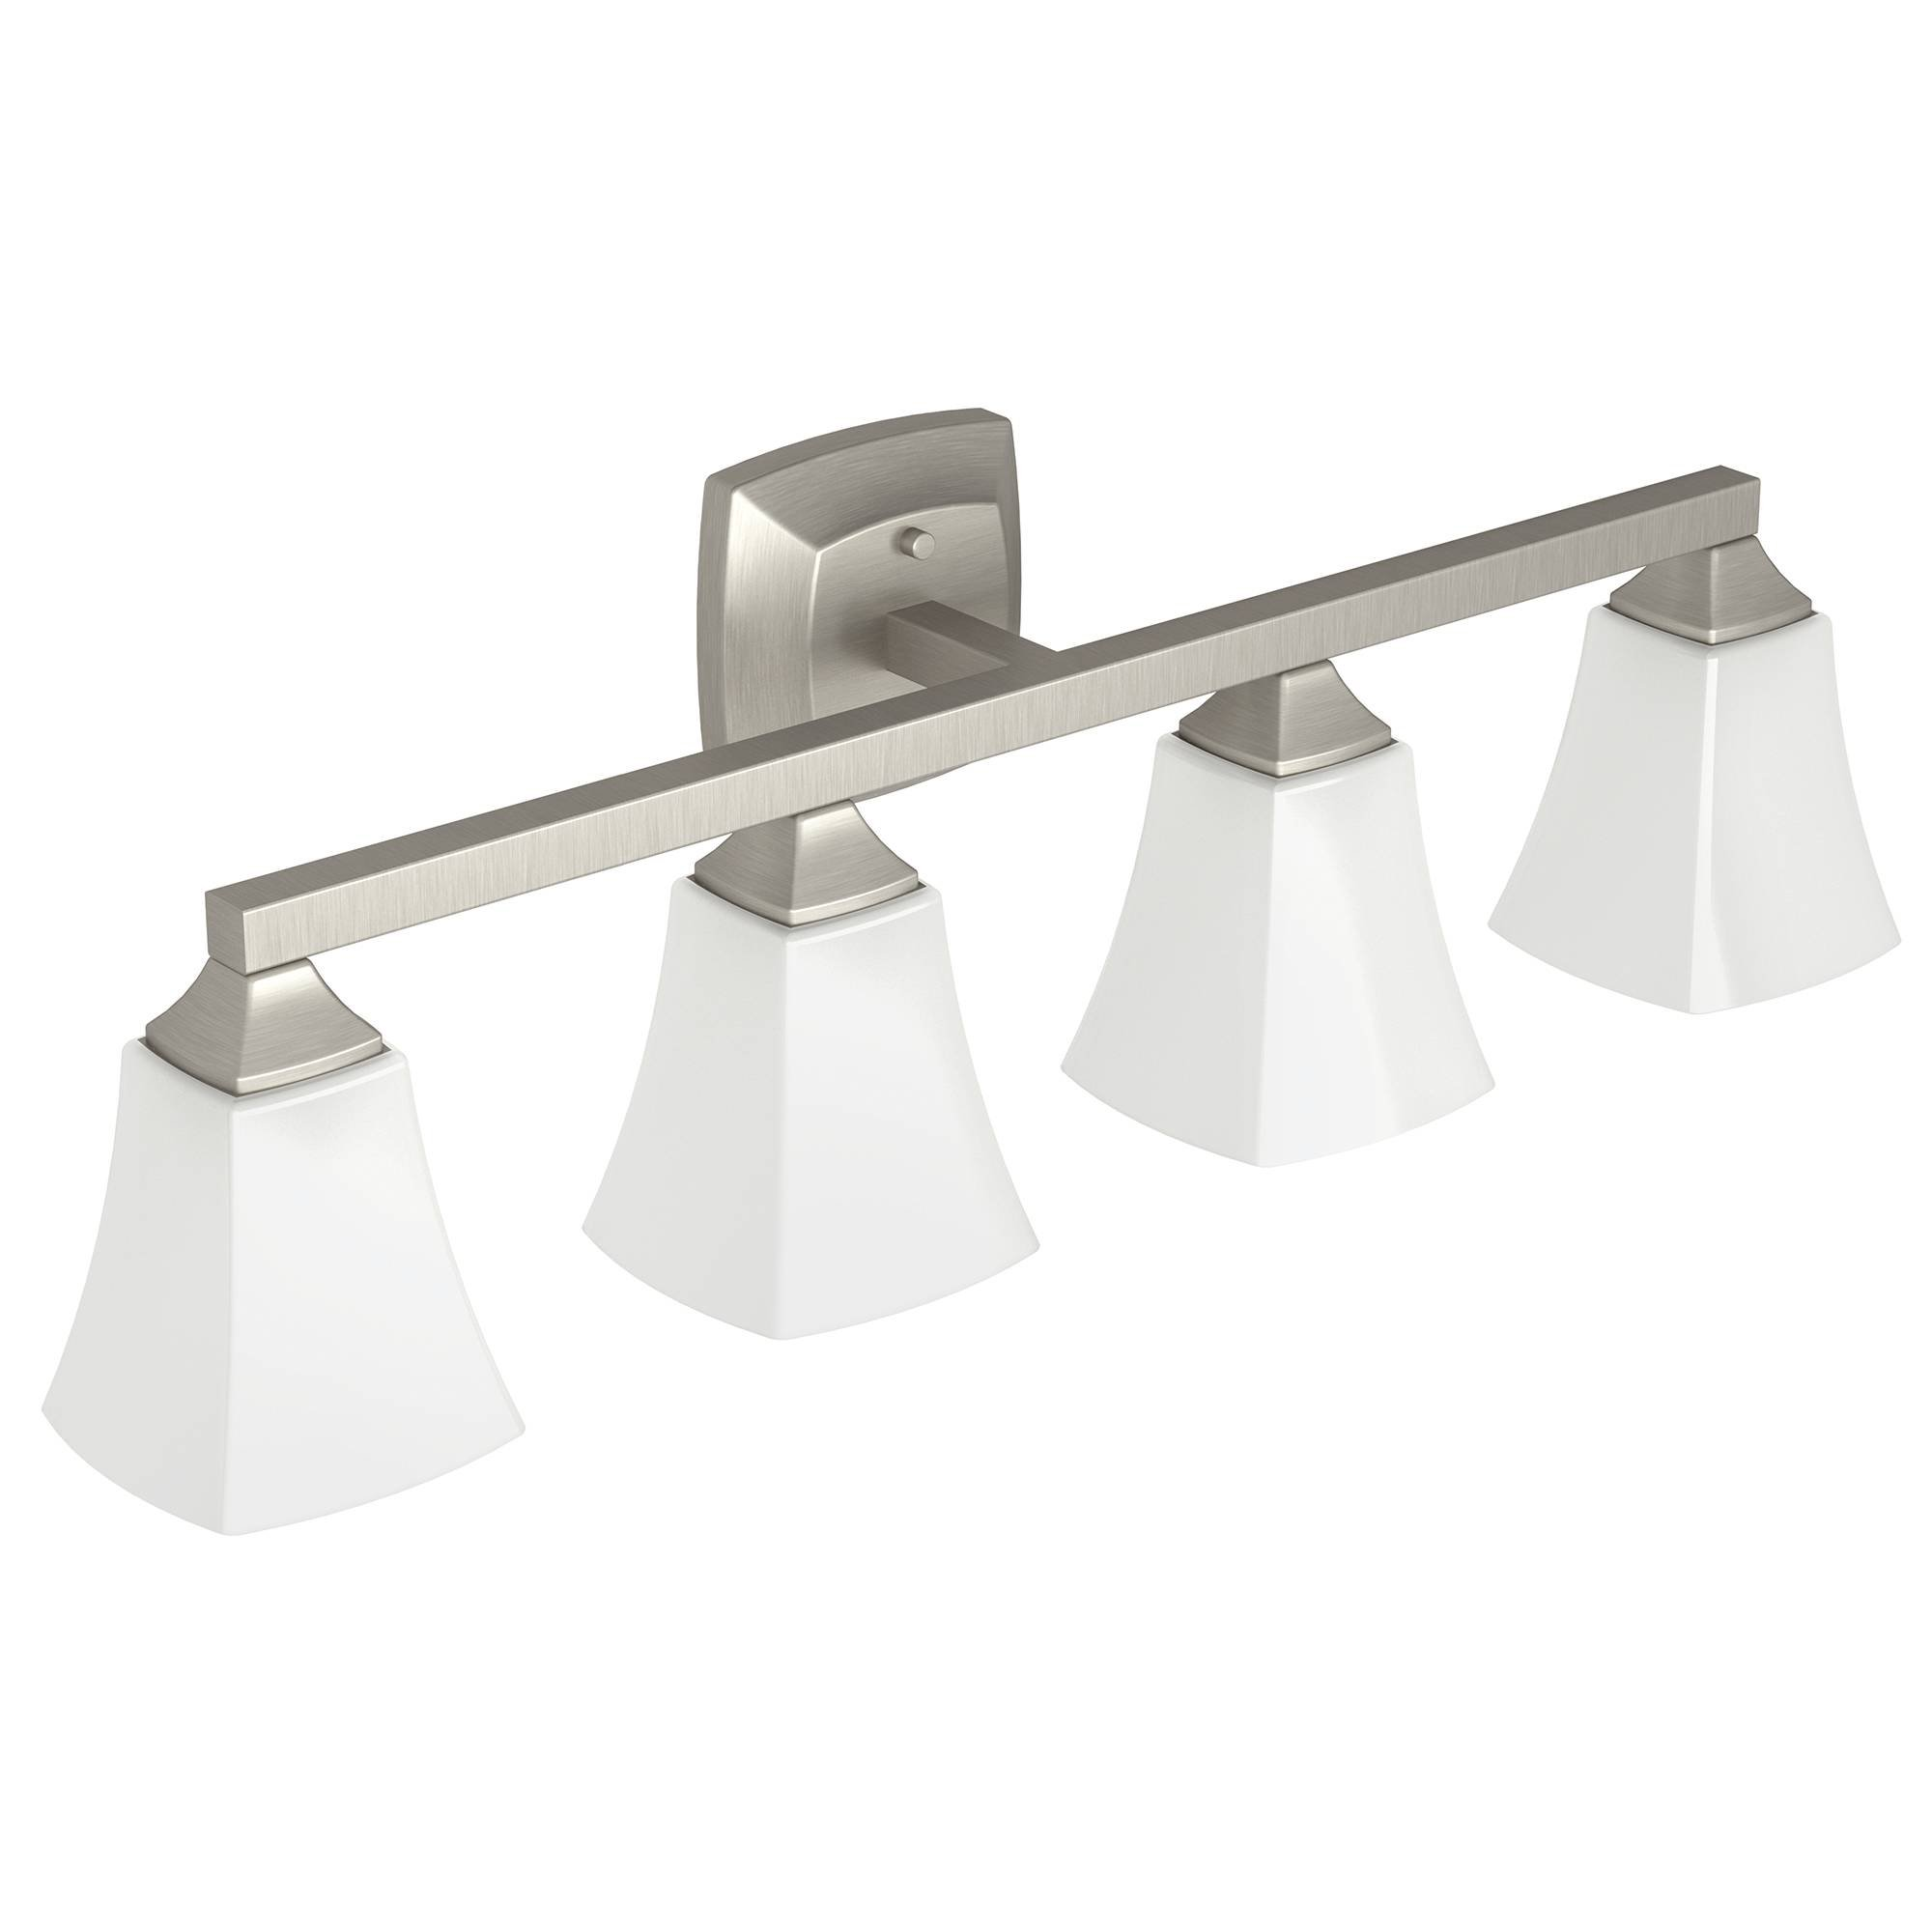 Moen YB5164BN Voss Bath Lighting Four Globe, Brushed Nickel by Moen